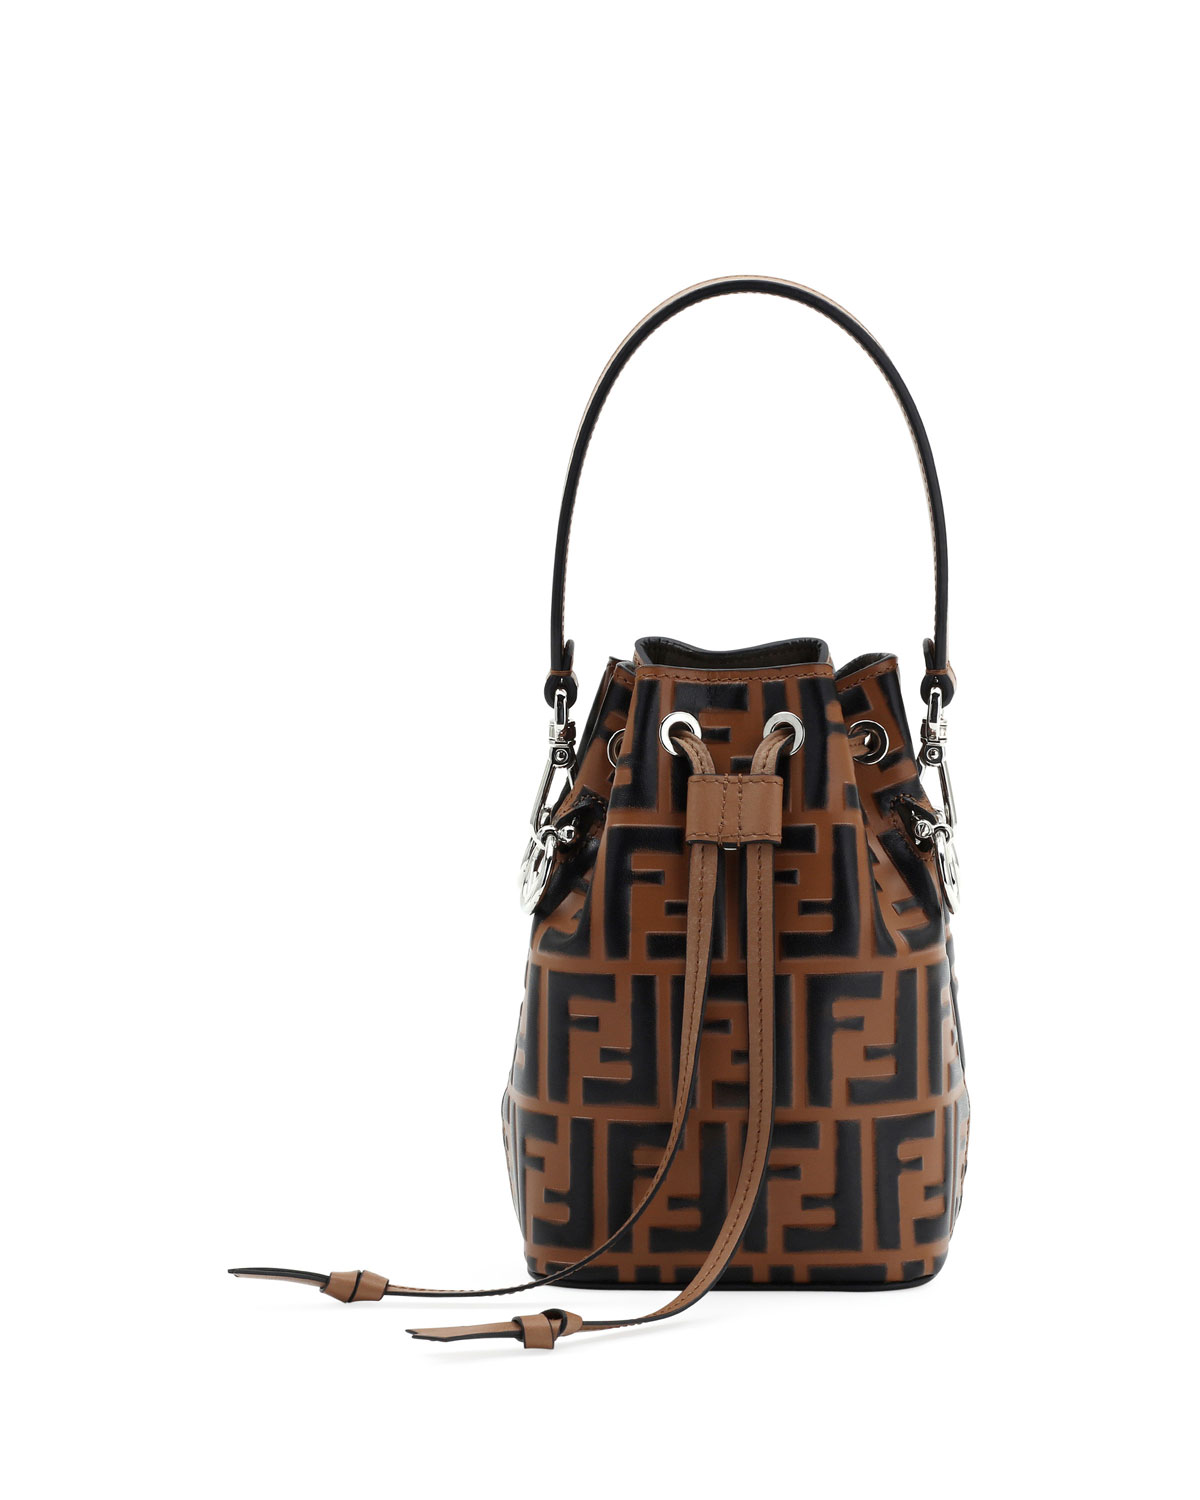 0d30a9493a5a Fendi Mon Tresor Small FF Bucket Bag